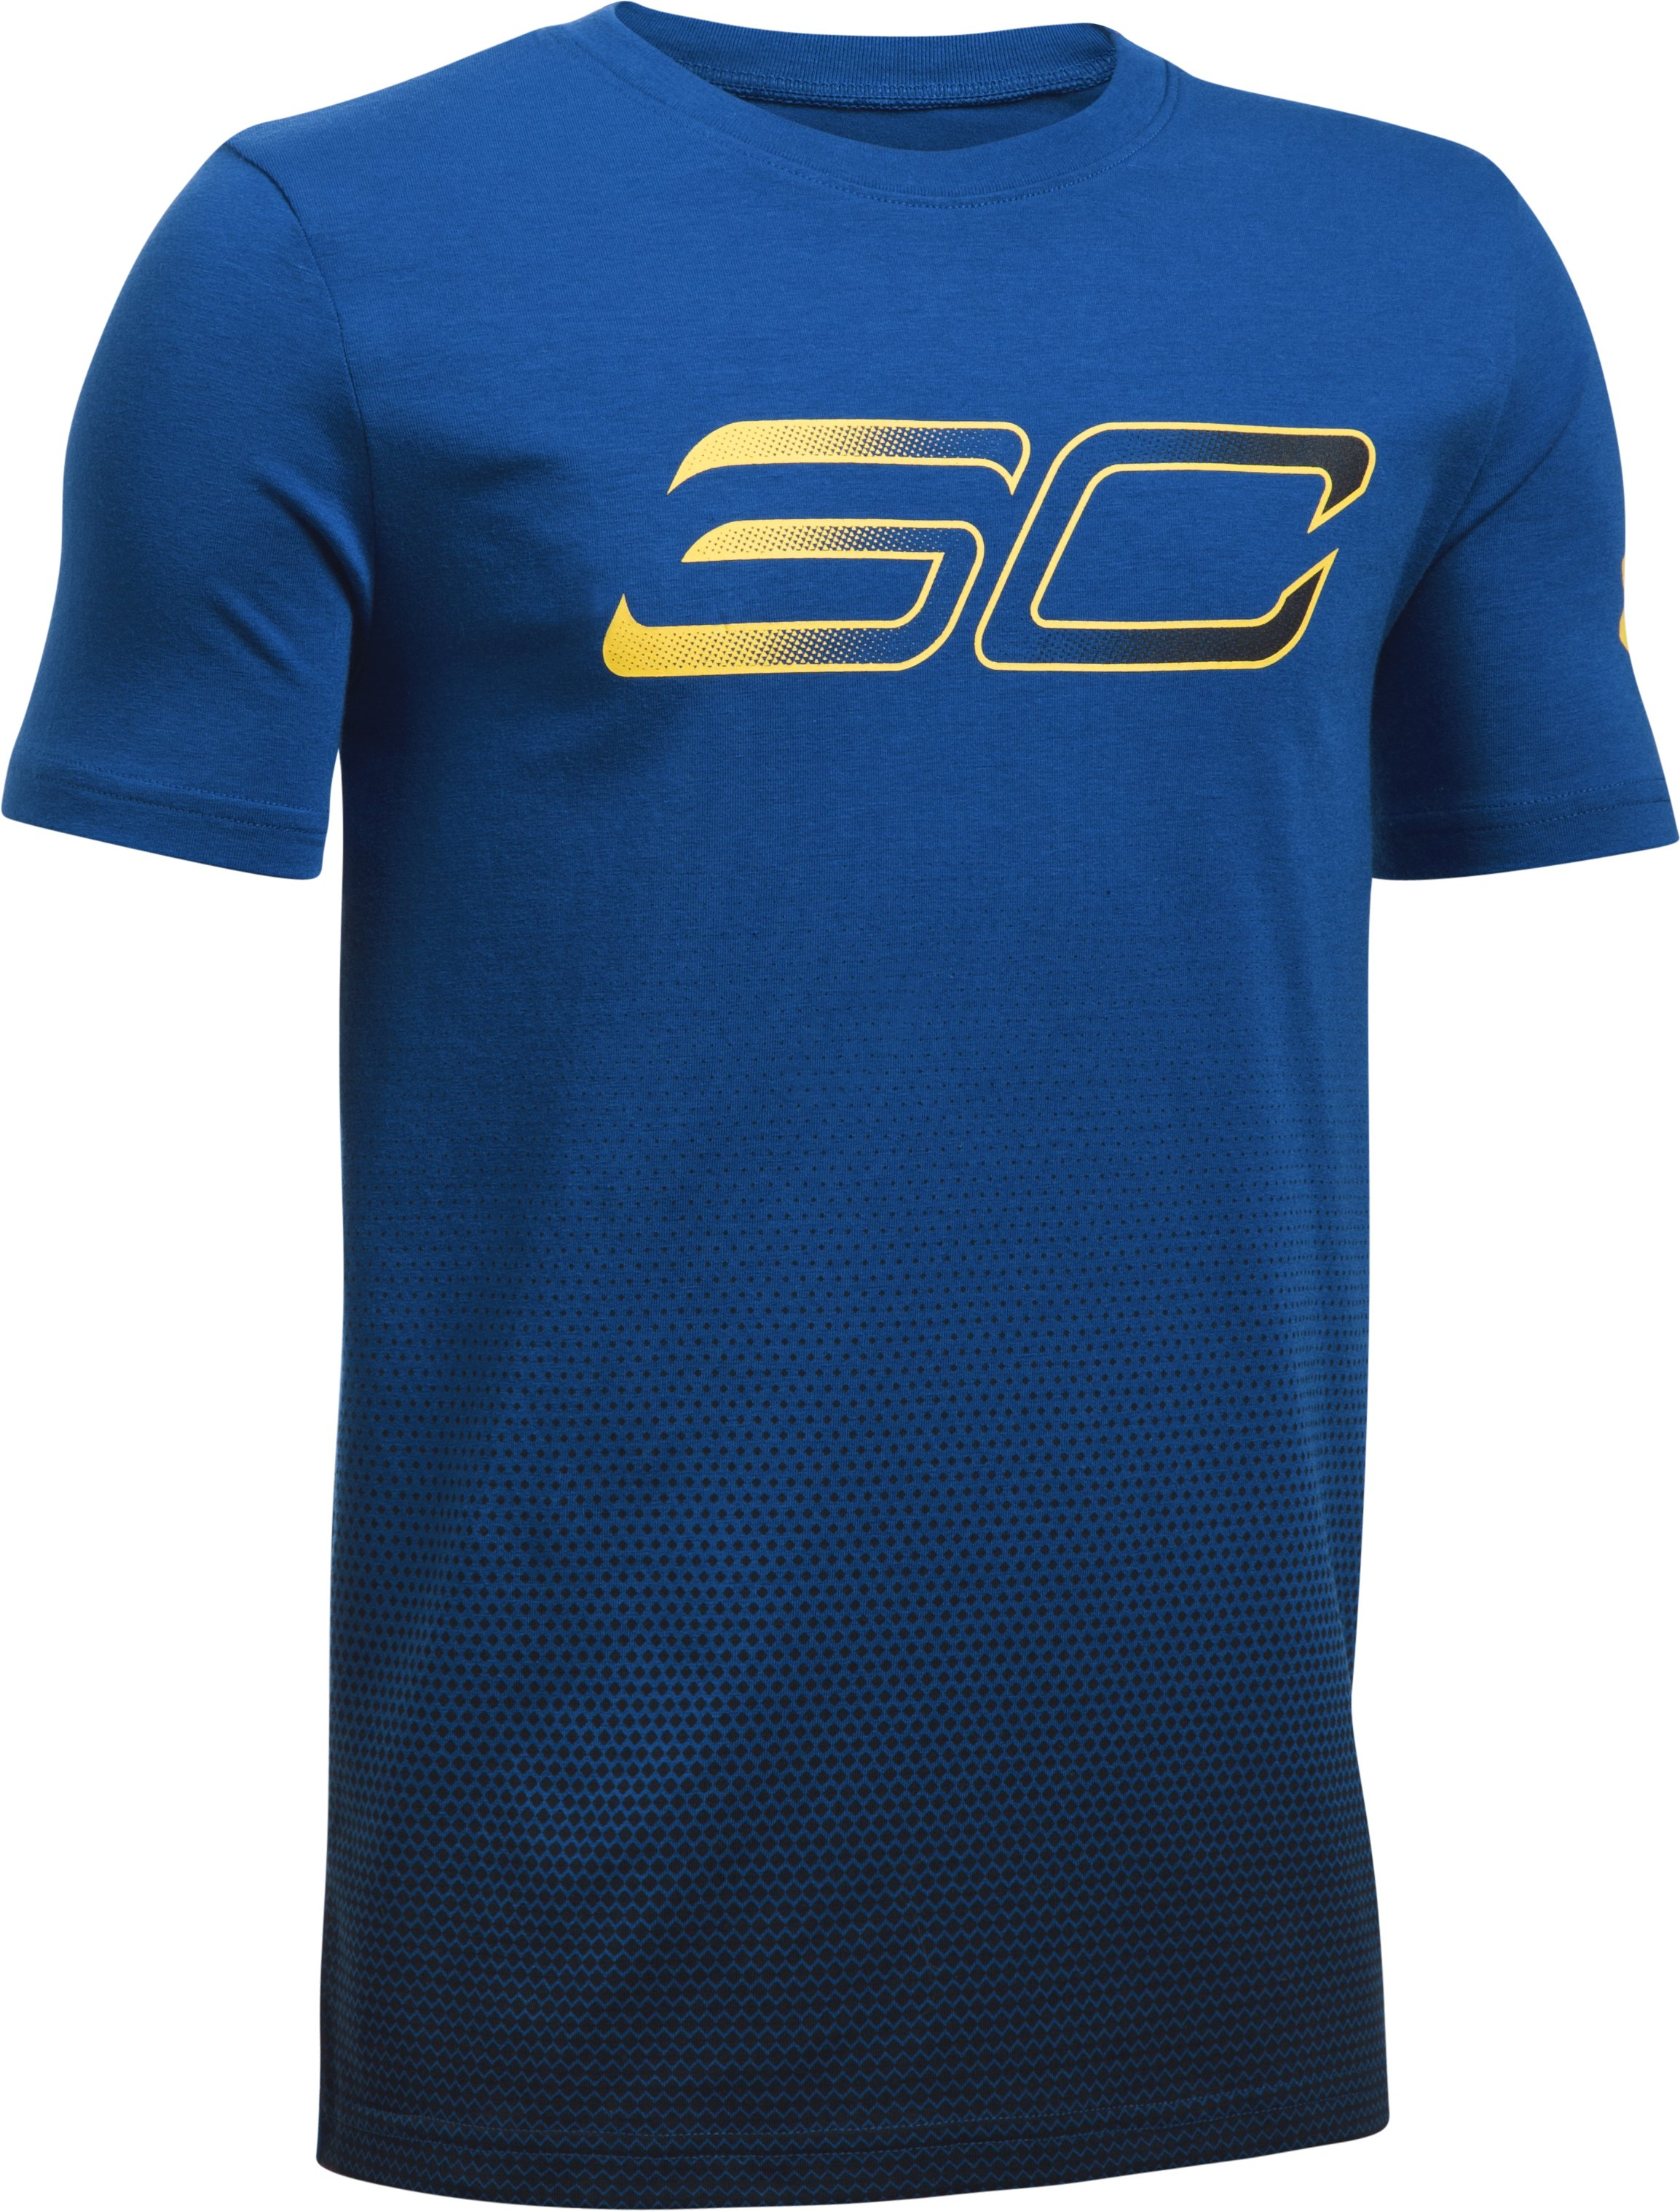 Boys' SC30 Player Fade Short Sleeve T-Shirt, Royal, undefined